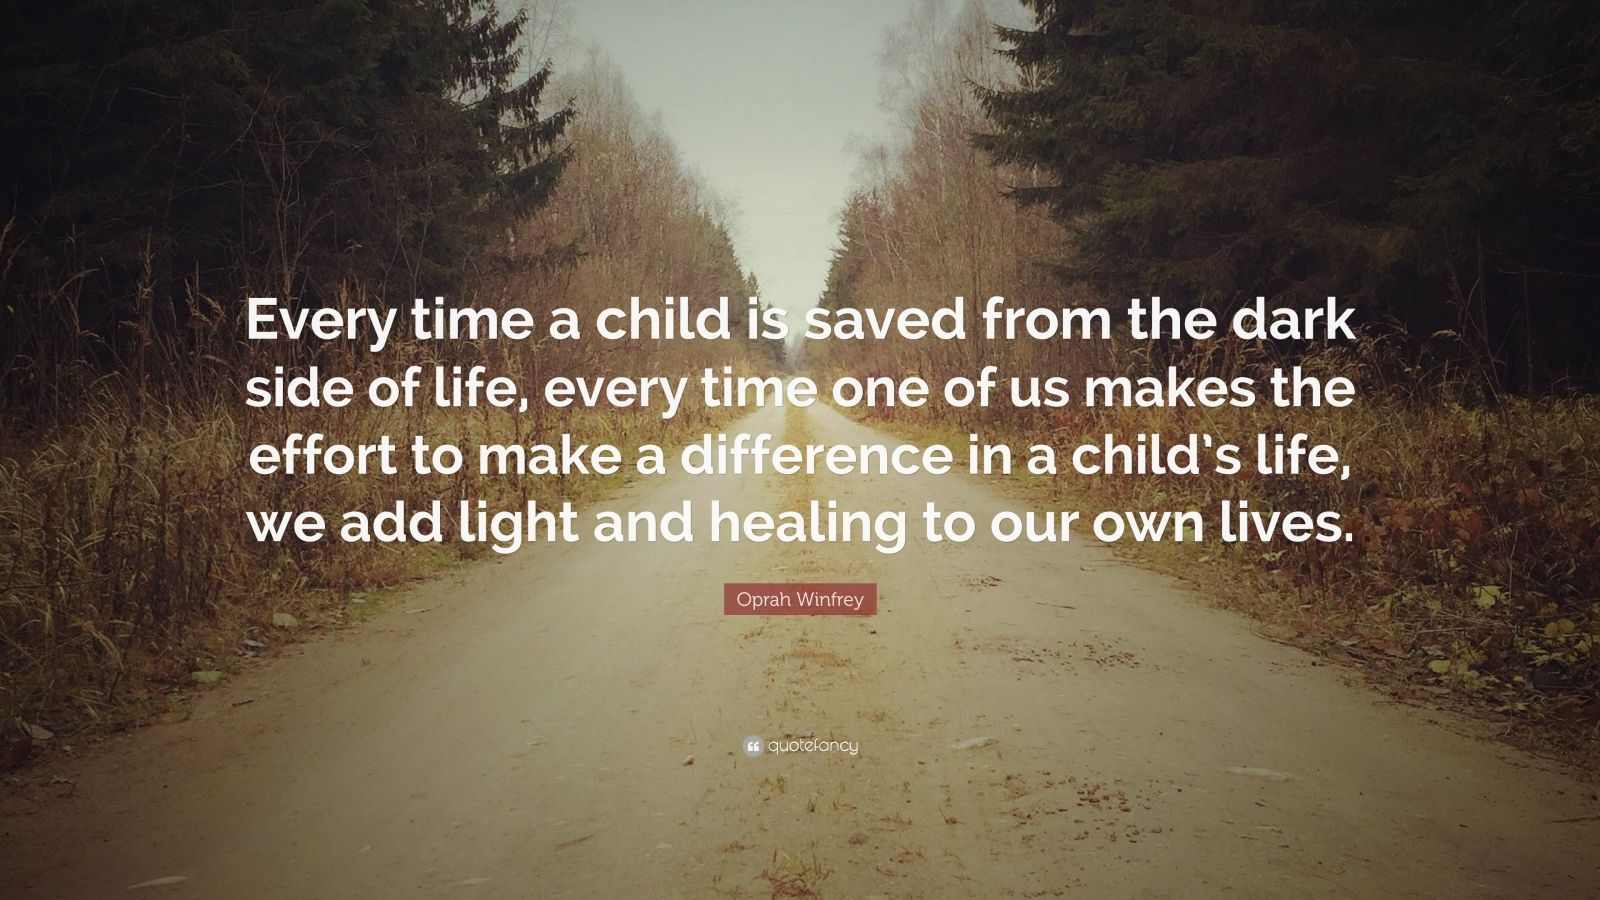 """Oprah Winfrey Quote: """"Every time a child is saved from the dark side of life, every time one of us makes the effort to make a difference in a child's life, we add light and healing to our own lives."""""""